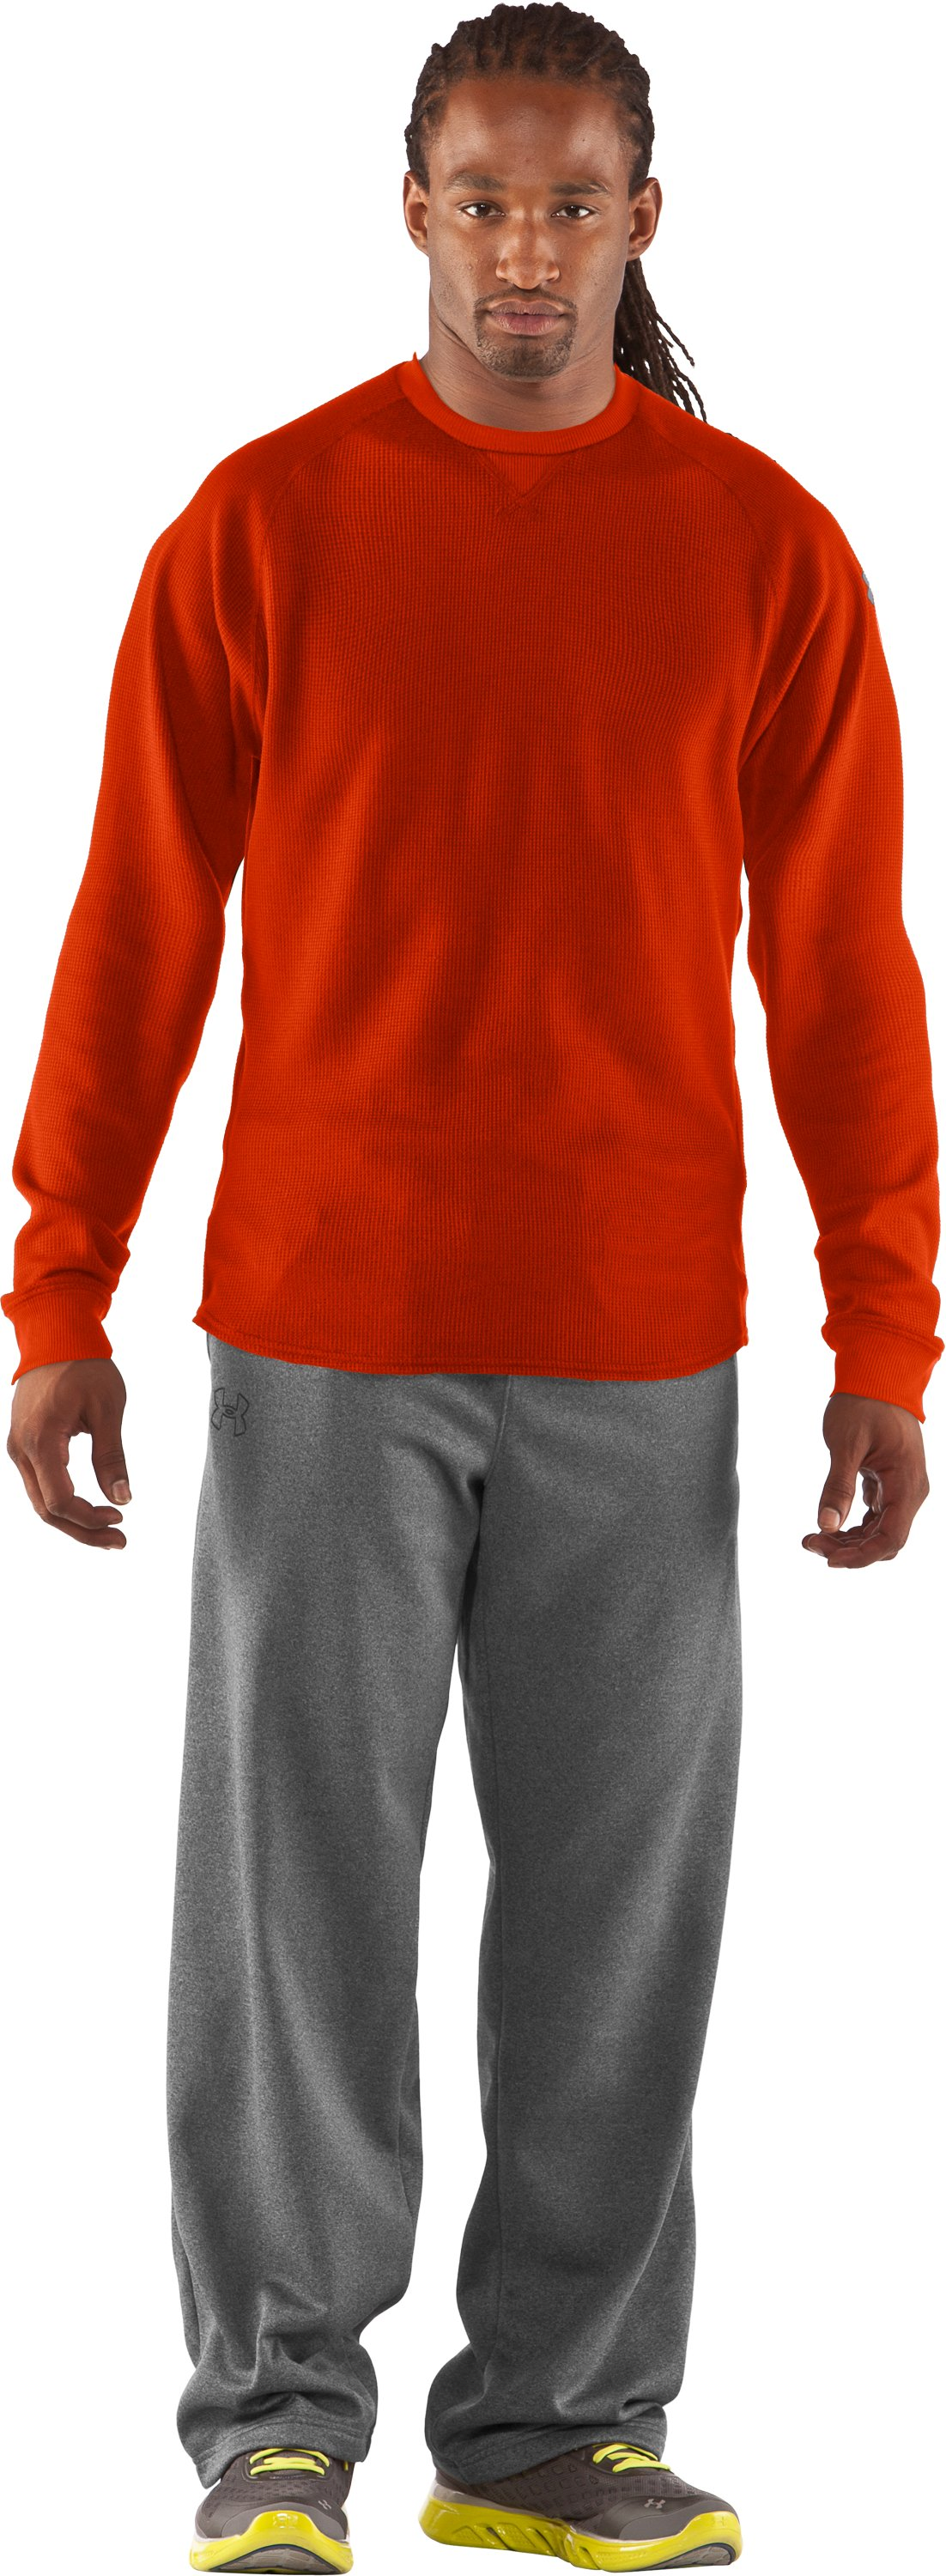 Men's UA Thermal 2.0 Crew Shirt, Dark Orange, zoomed image